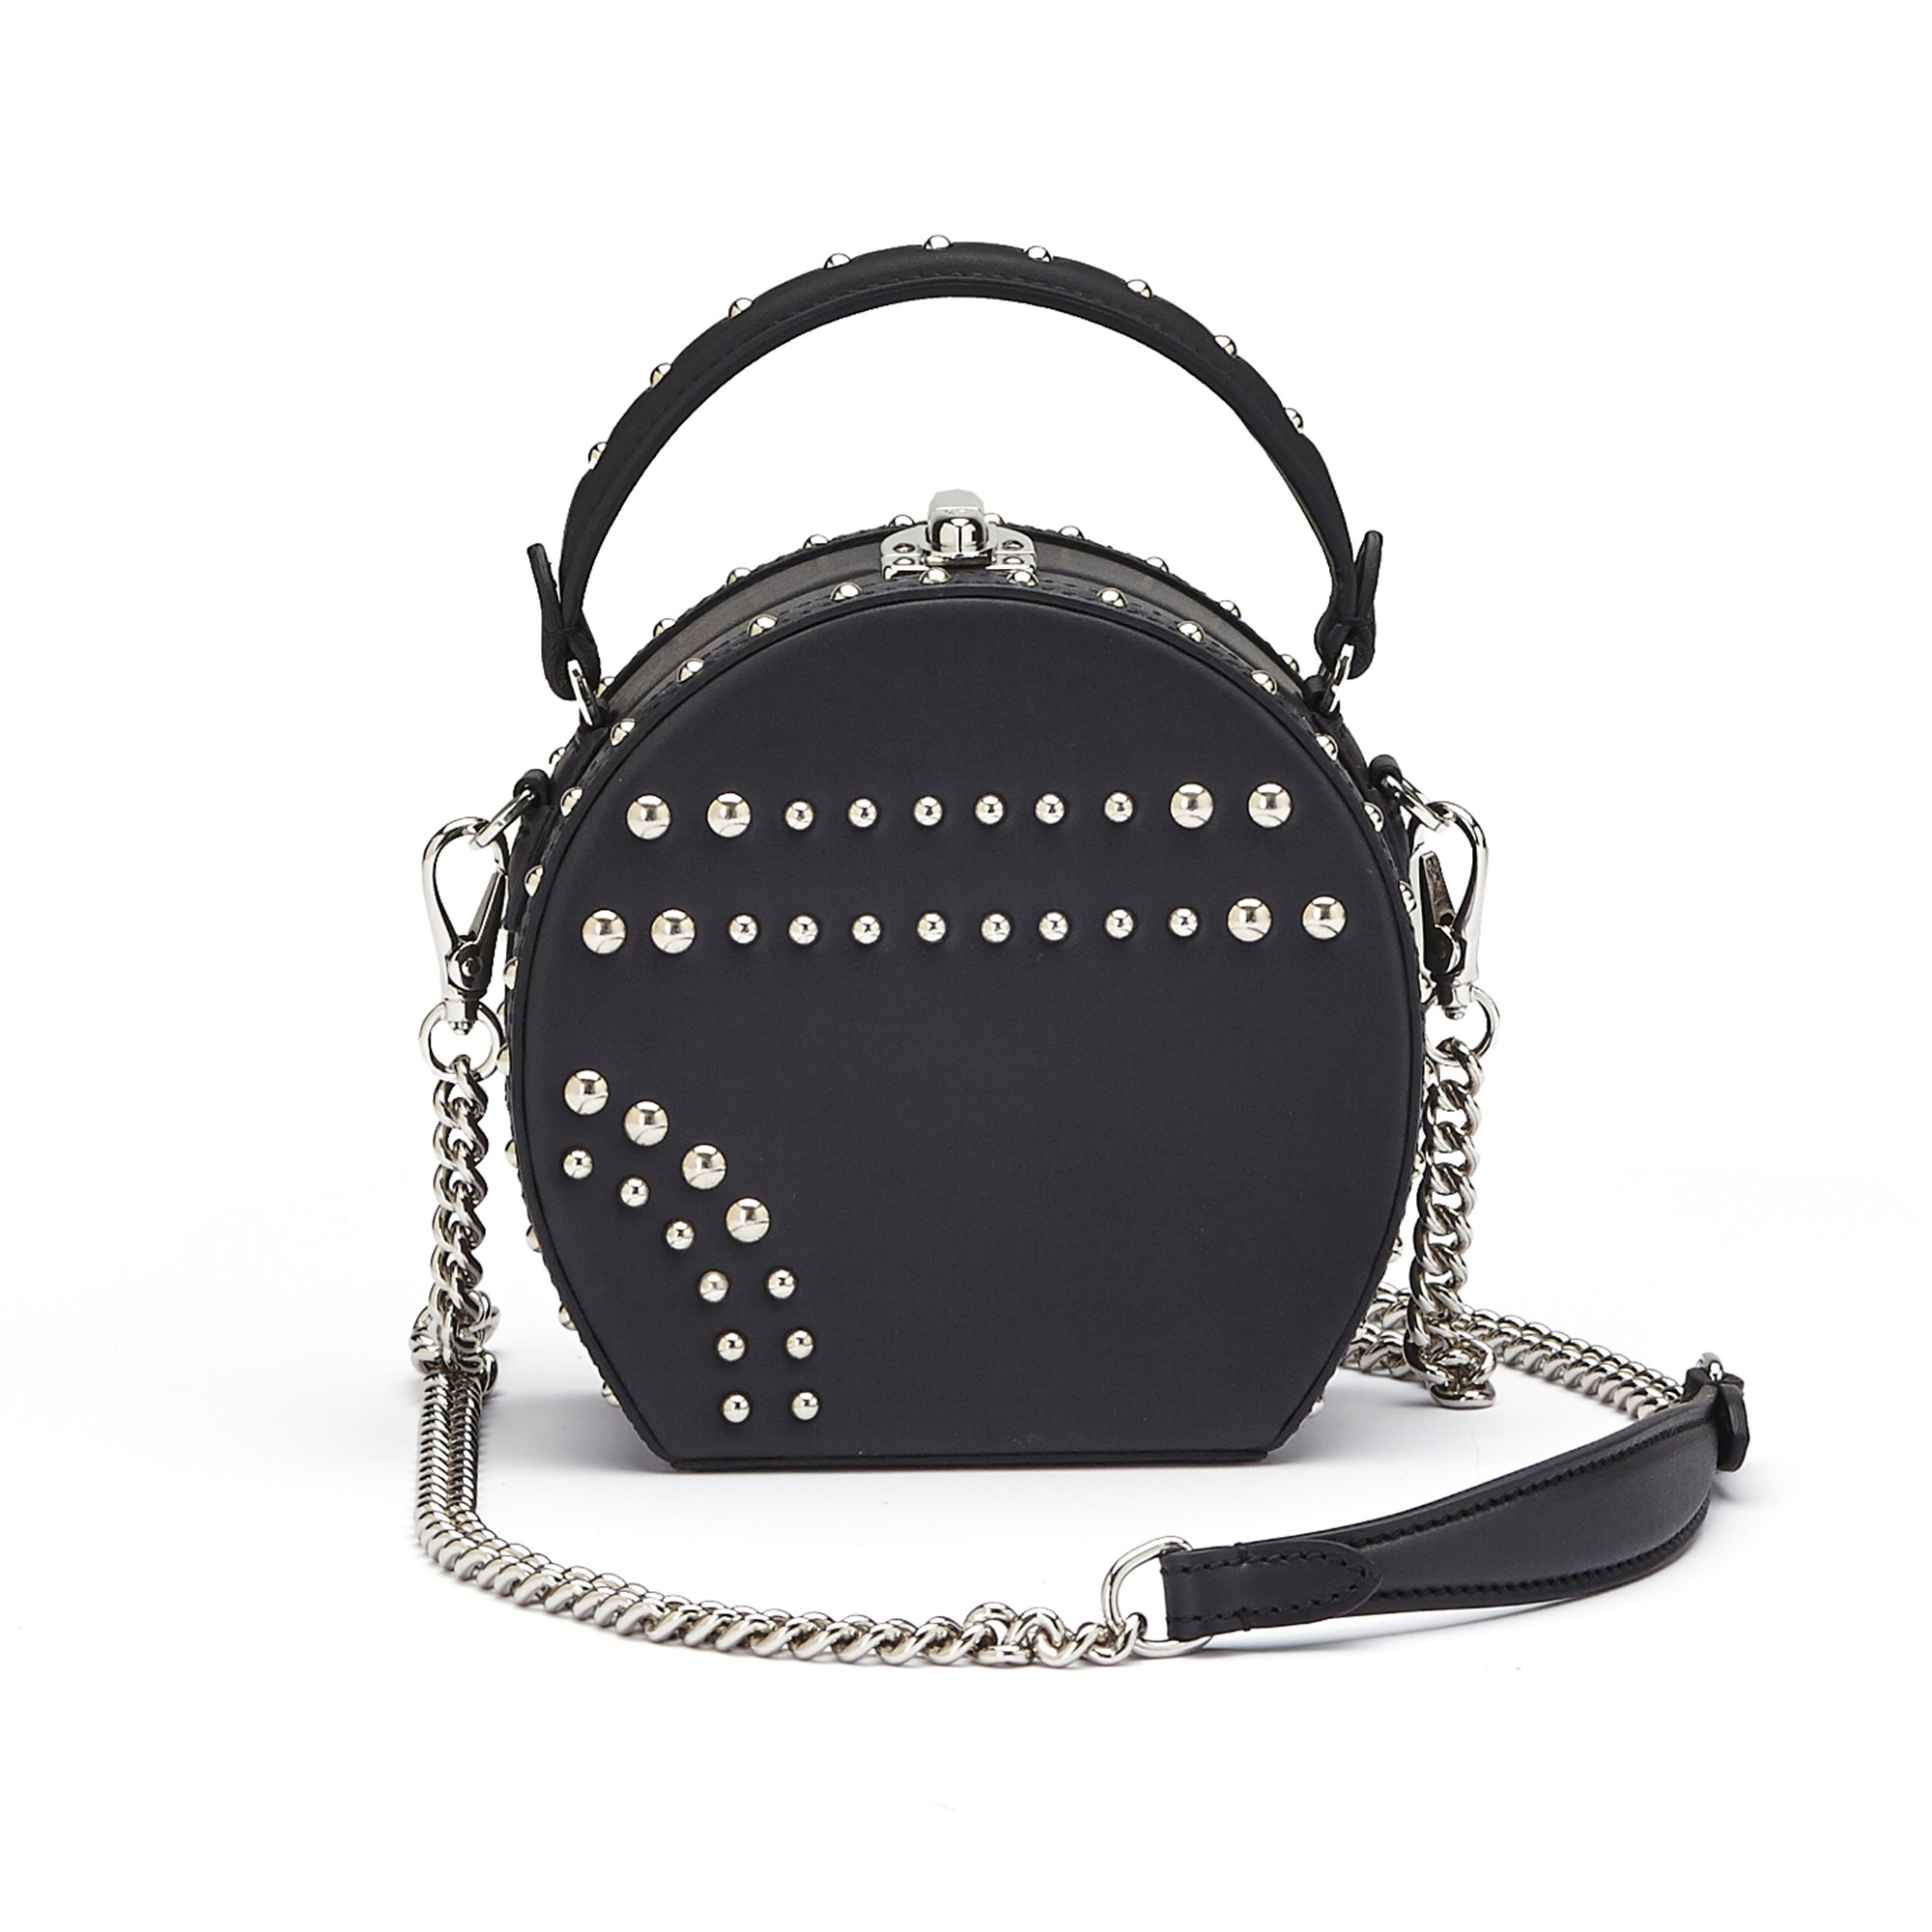 The black french calf Mini Bertoncina with studded bag by Bertoni 1949 03